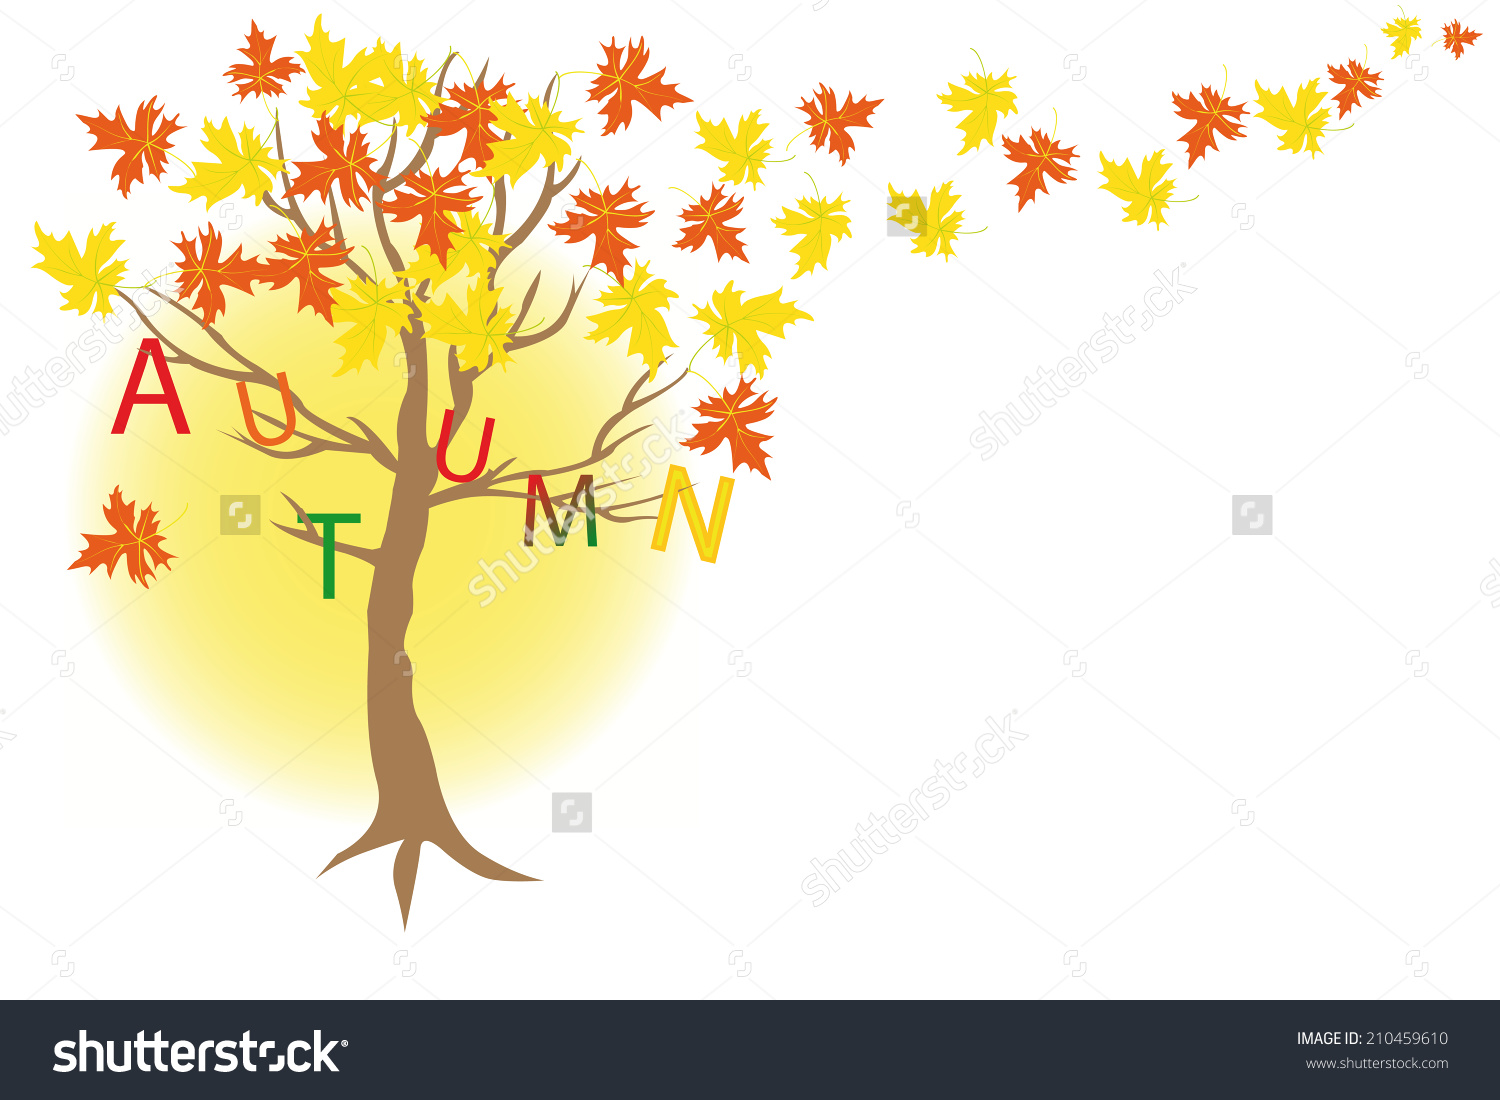 Autumn Gold Tree Maple Letters Autumn Stock Vector 210459610.